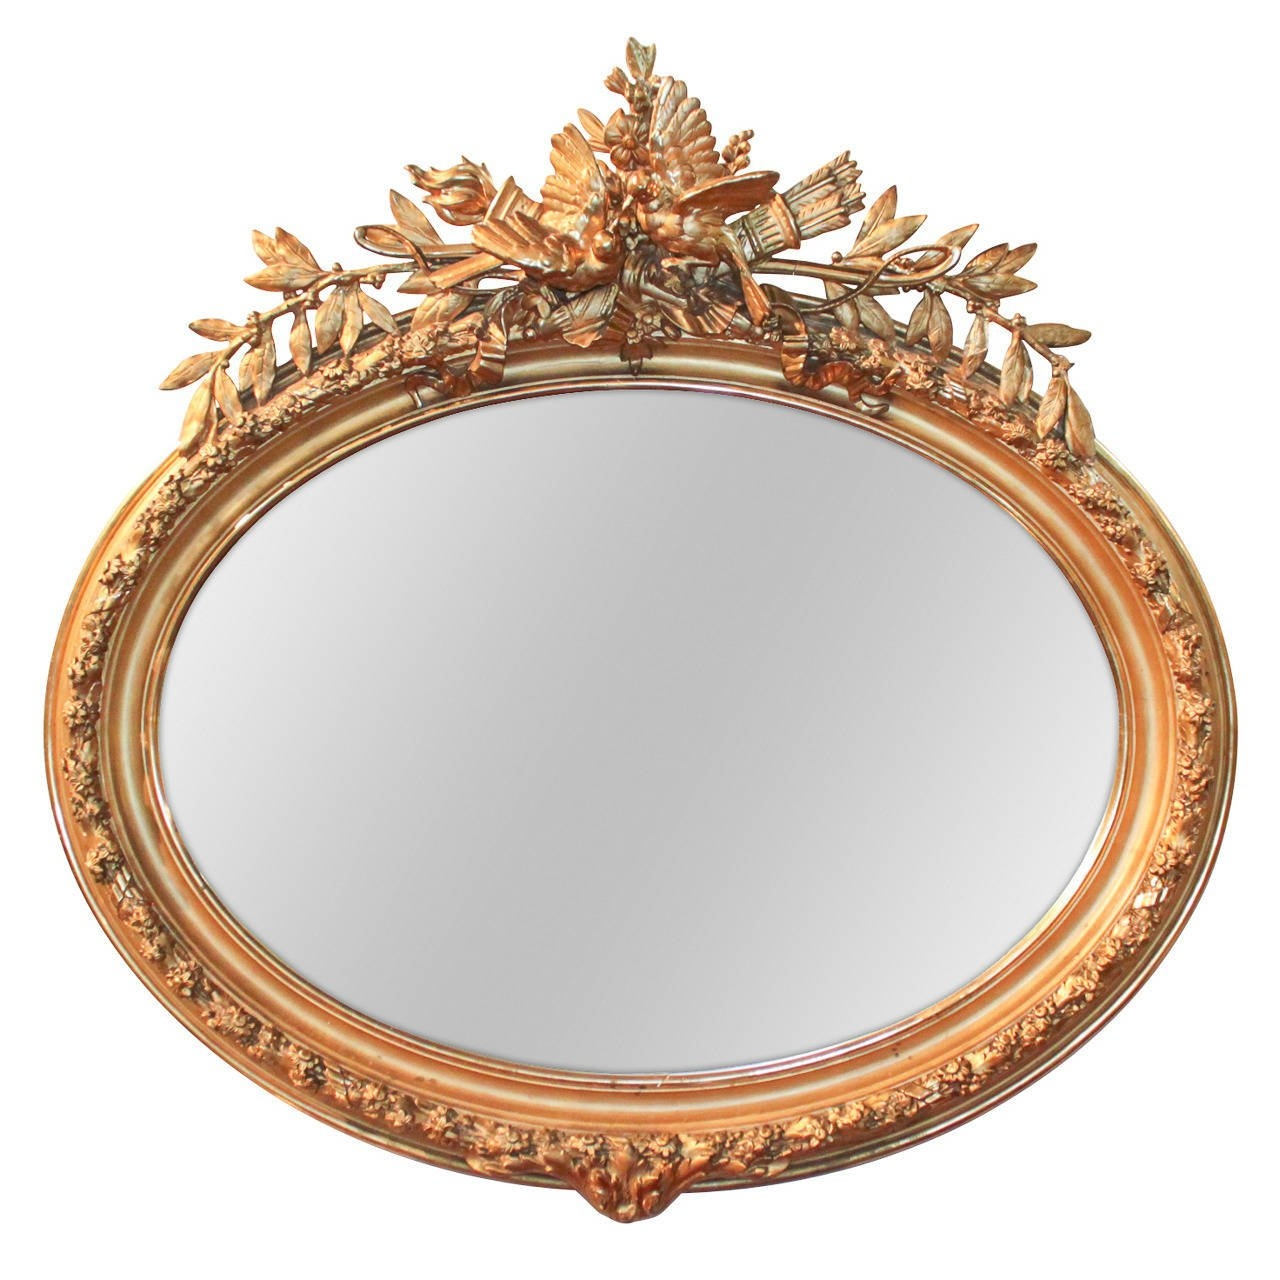 19th Century French Louis Xvi Oval Gilt Mirror For Sale At 1stdibs Within French Oval Mirror (Image 3 of 15)